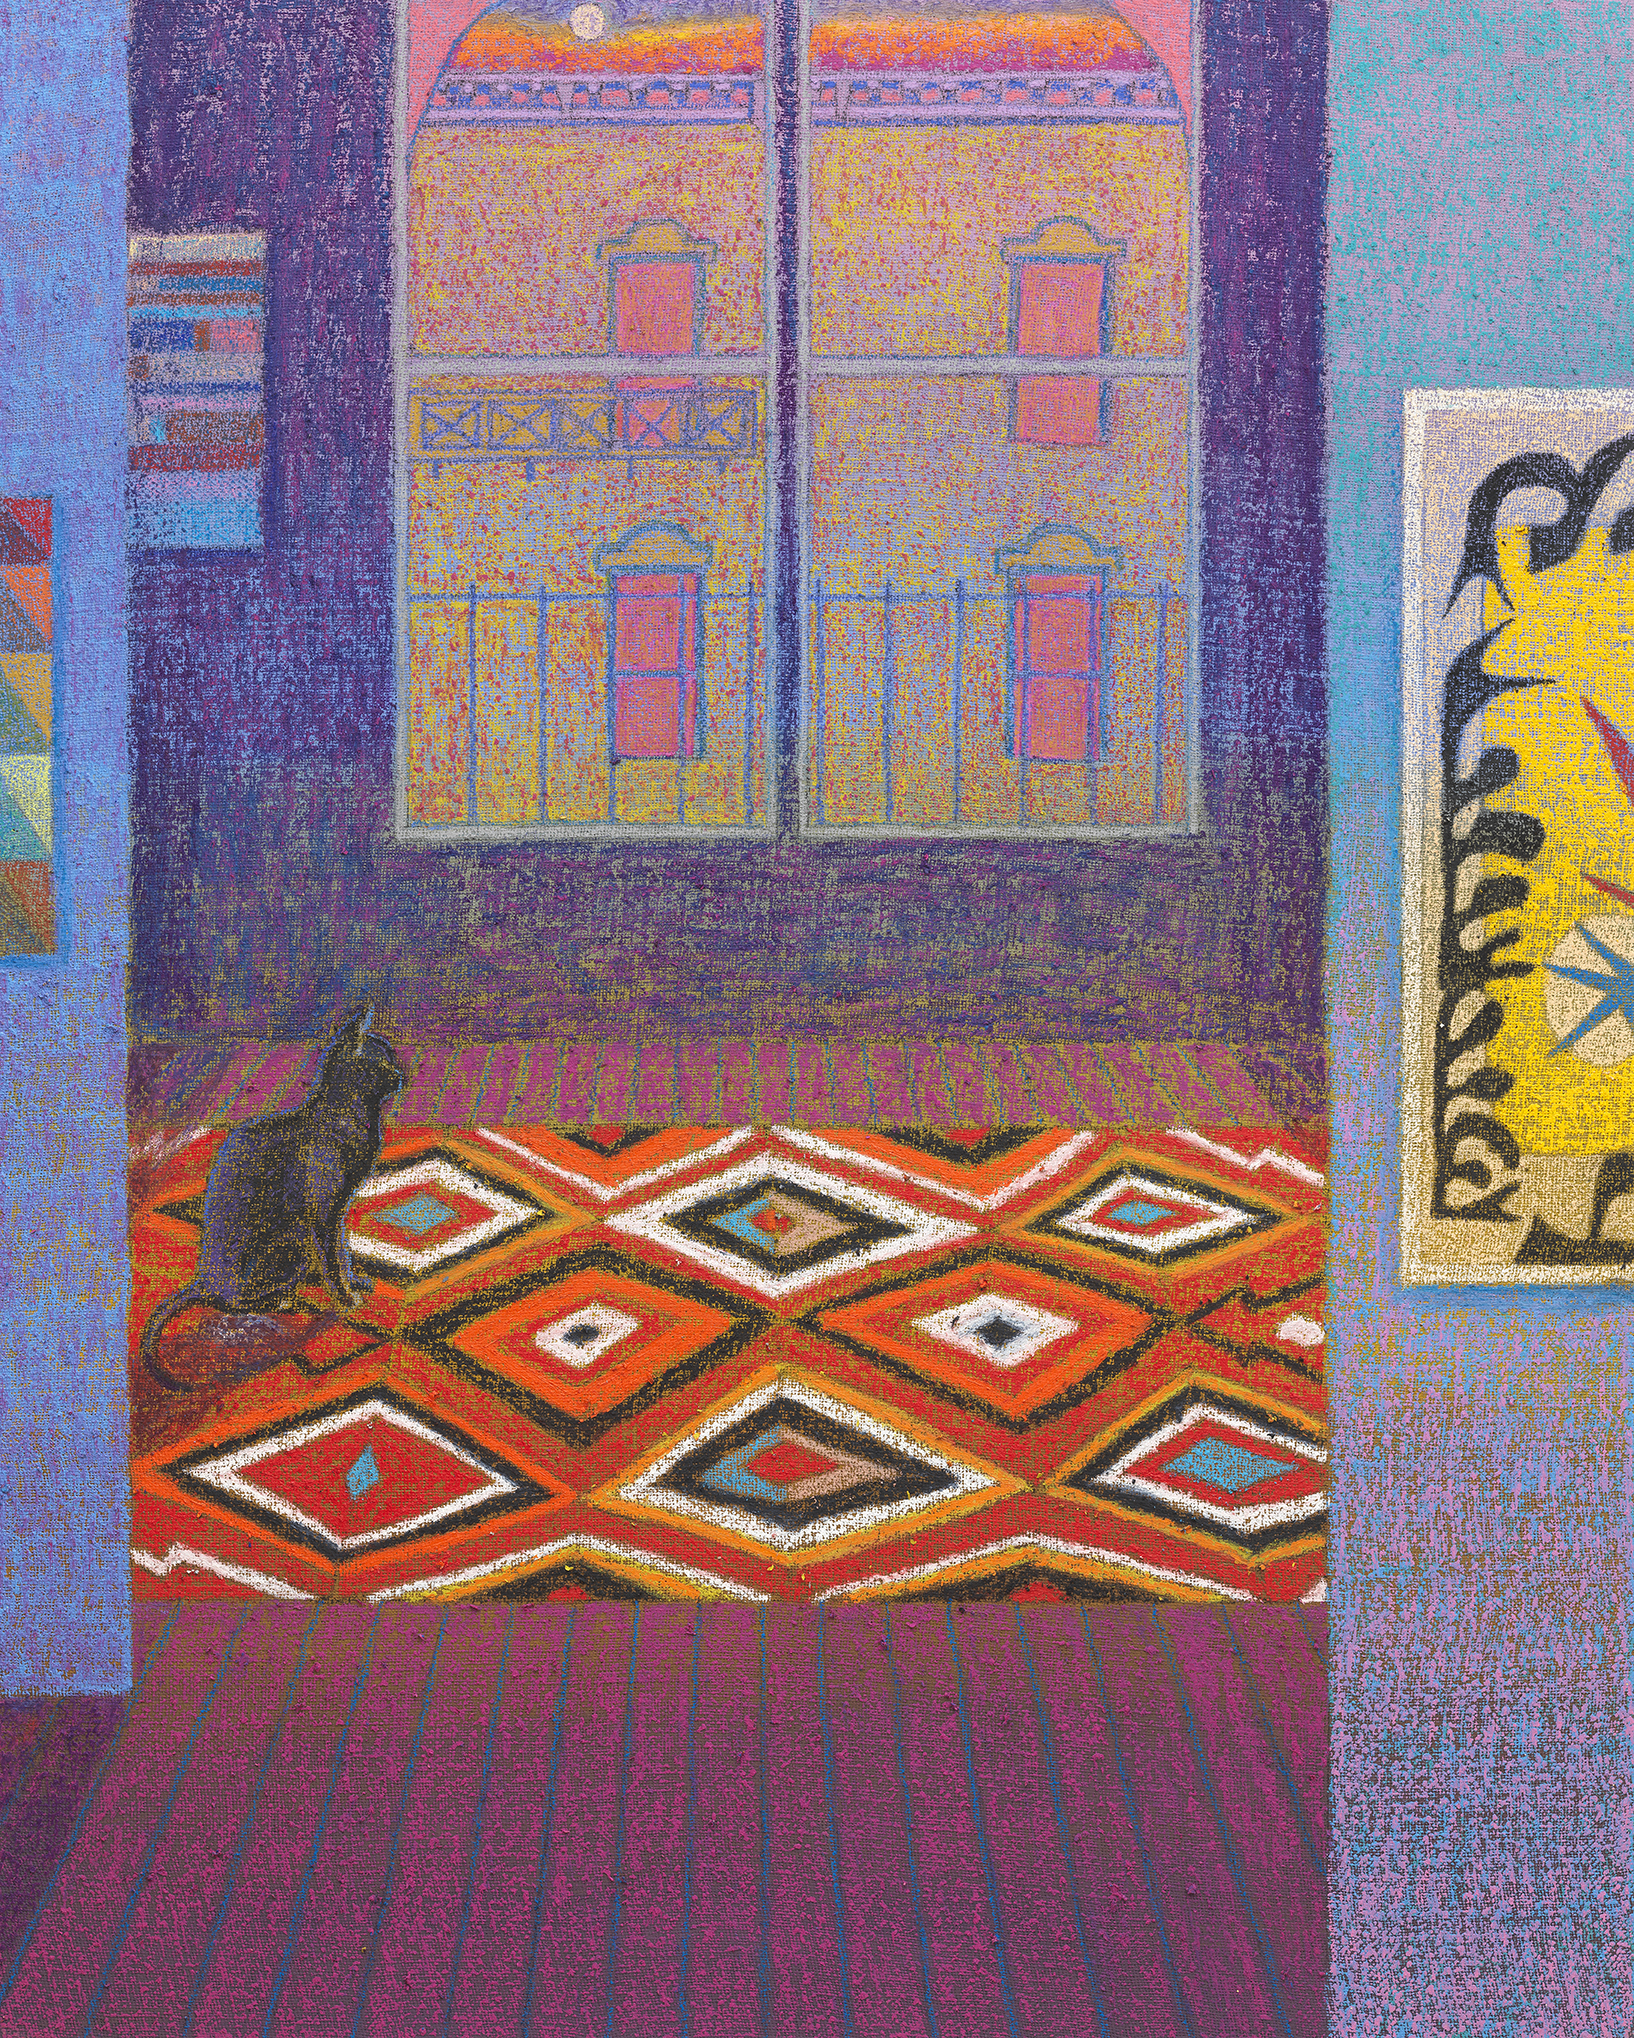 JJ Manford New York City Loft with Navajo Rug and Matisse Poster, 2019 oil stick, oil pastel, and flashe on burlap over canvas 60 x 48 in. (152.4 x 121.9 cm.)